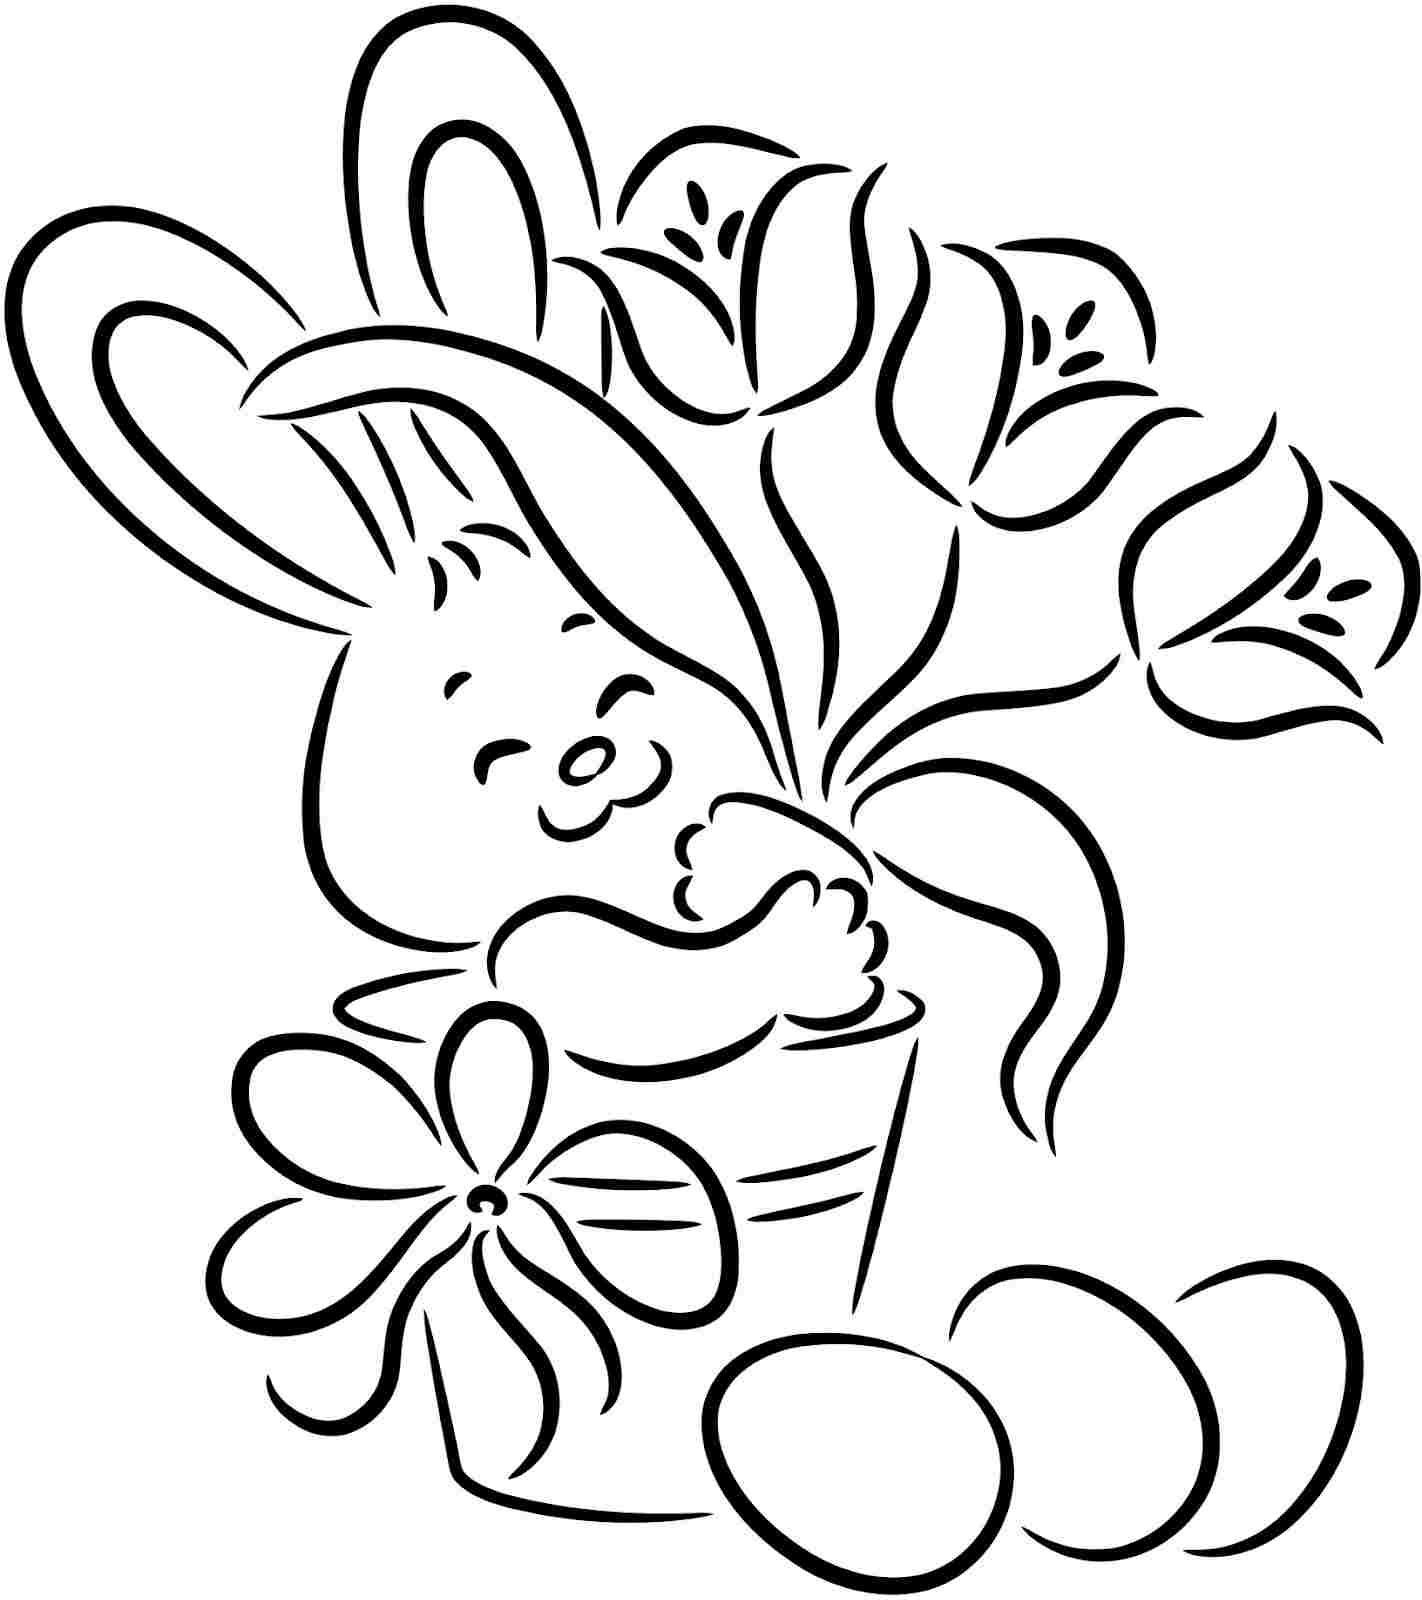 easy bunny drawings for kids easter colouring pages id 28875 ...